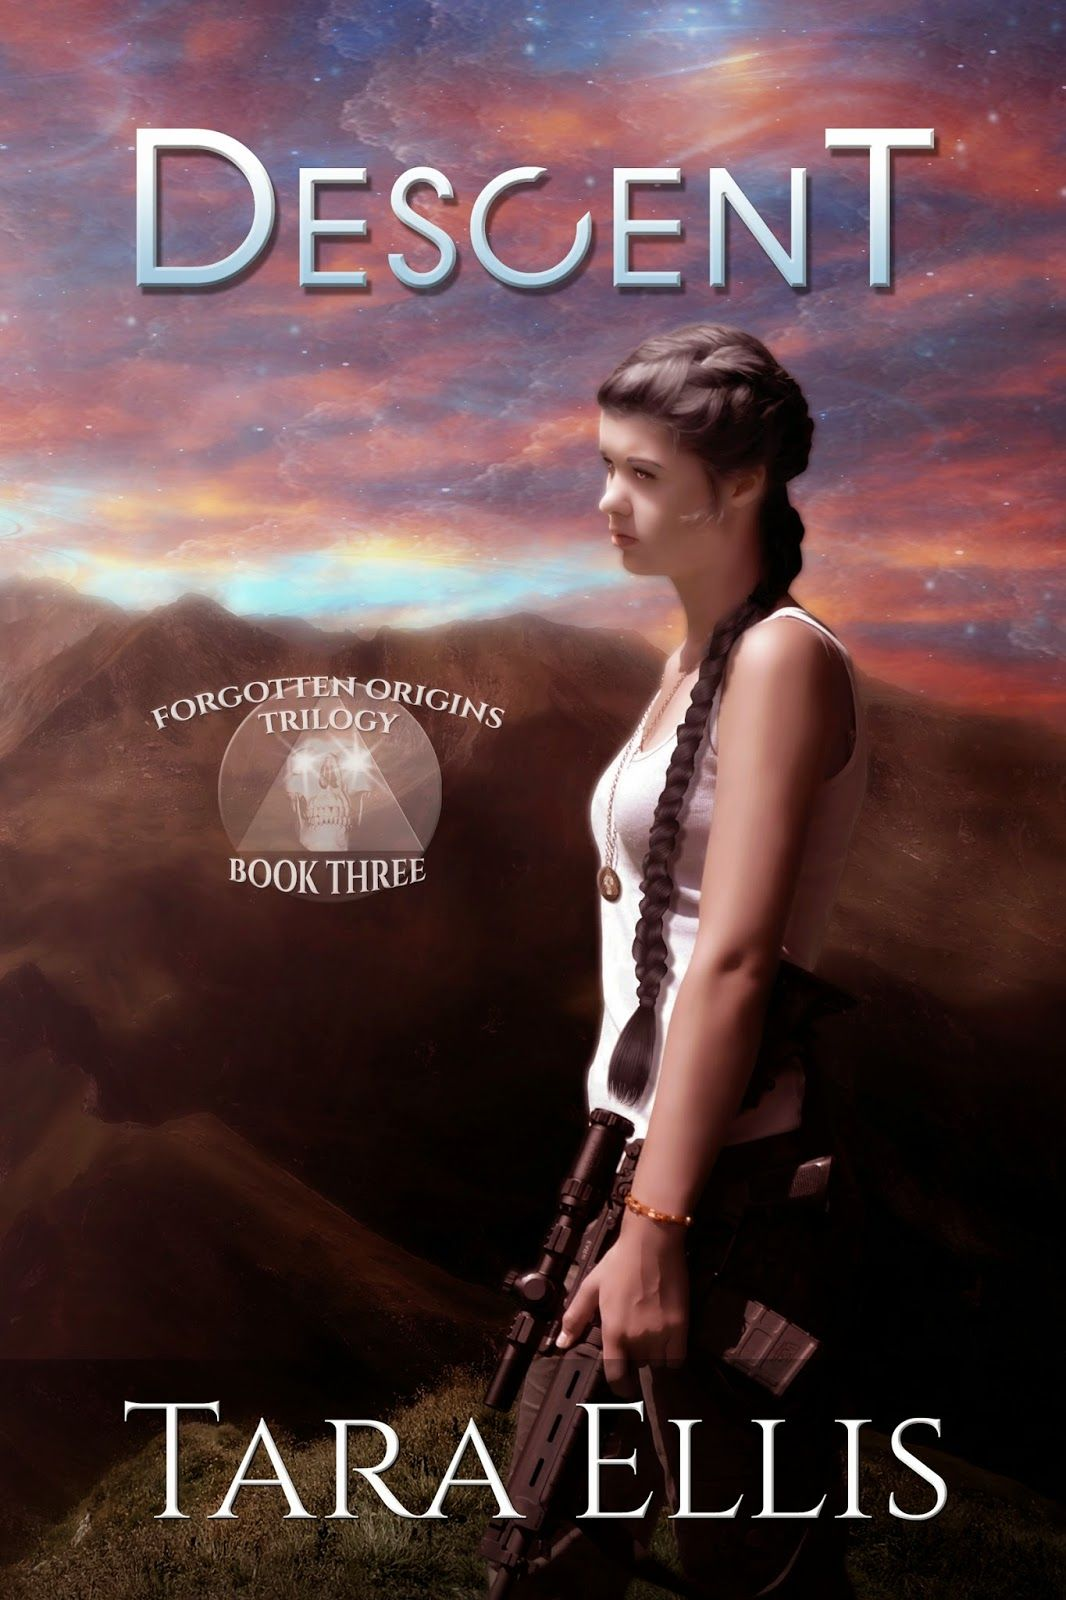 The Forgotten Origins Trilogy - COVER REVEAL for the third book, Descent!